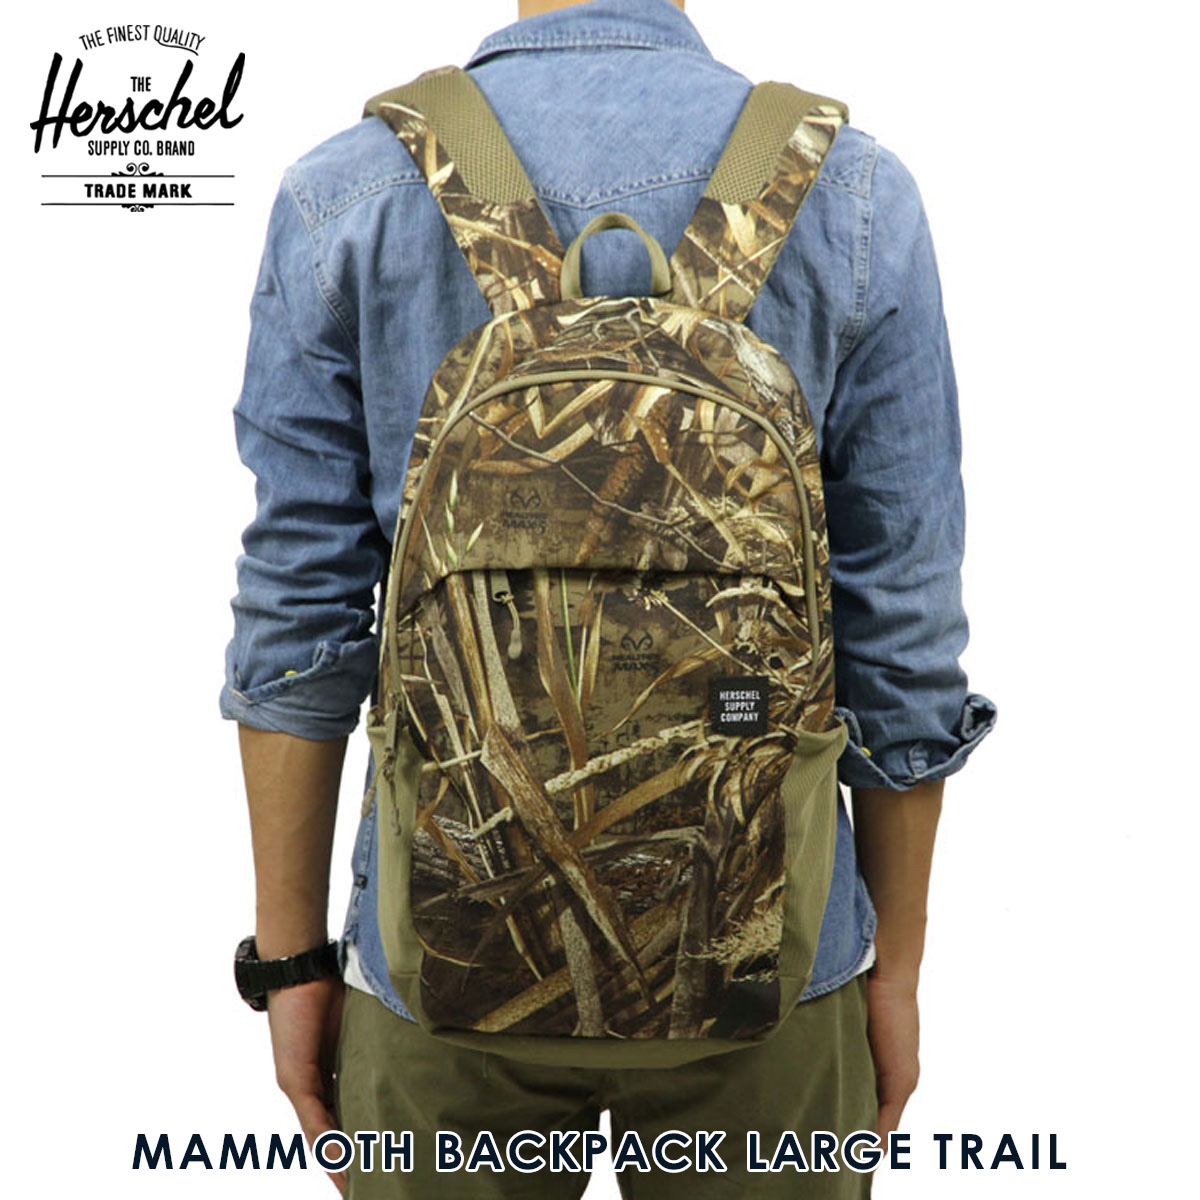 ハーシェル サプライ Herschel Supply 正規販売店 バッグ MAMMOTH BACKPACK LARGE TRAIL 10322-01454-OS REALTREE D00S15